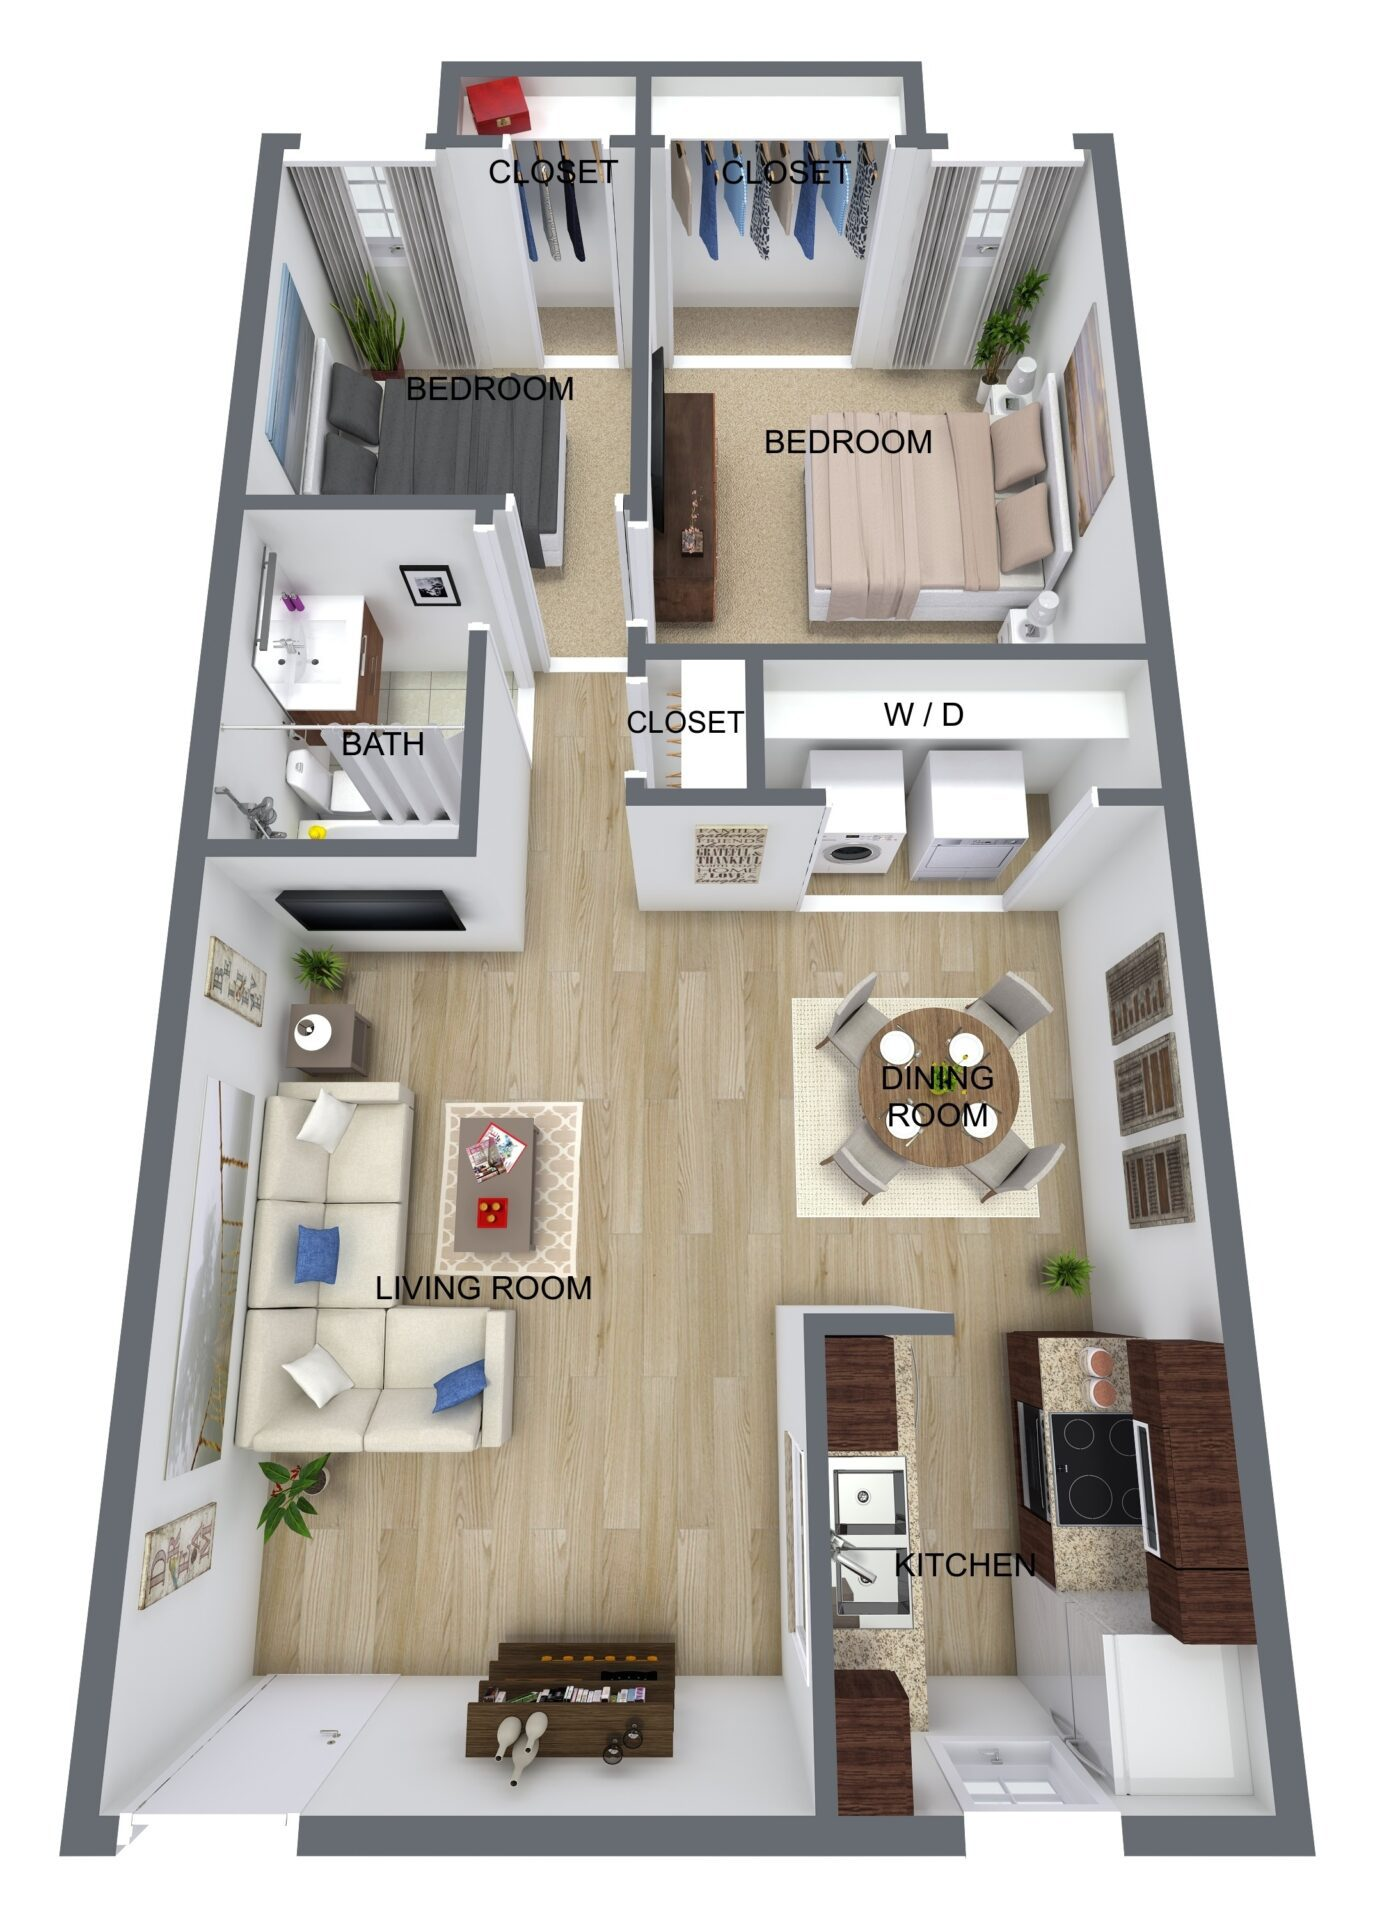 1BR - new construction